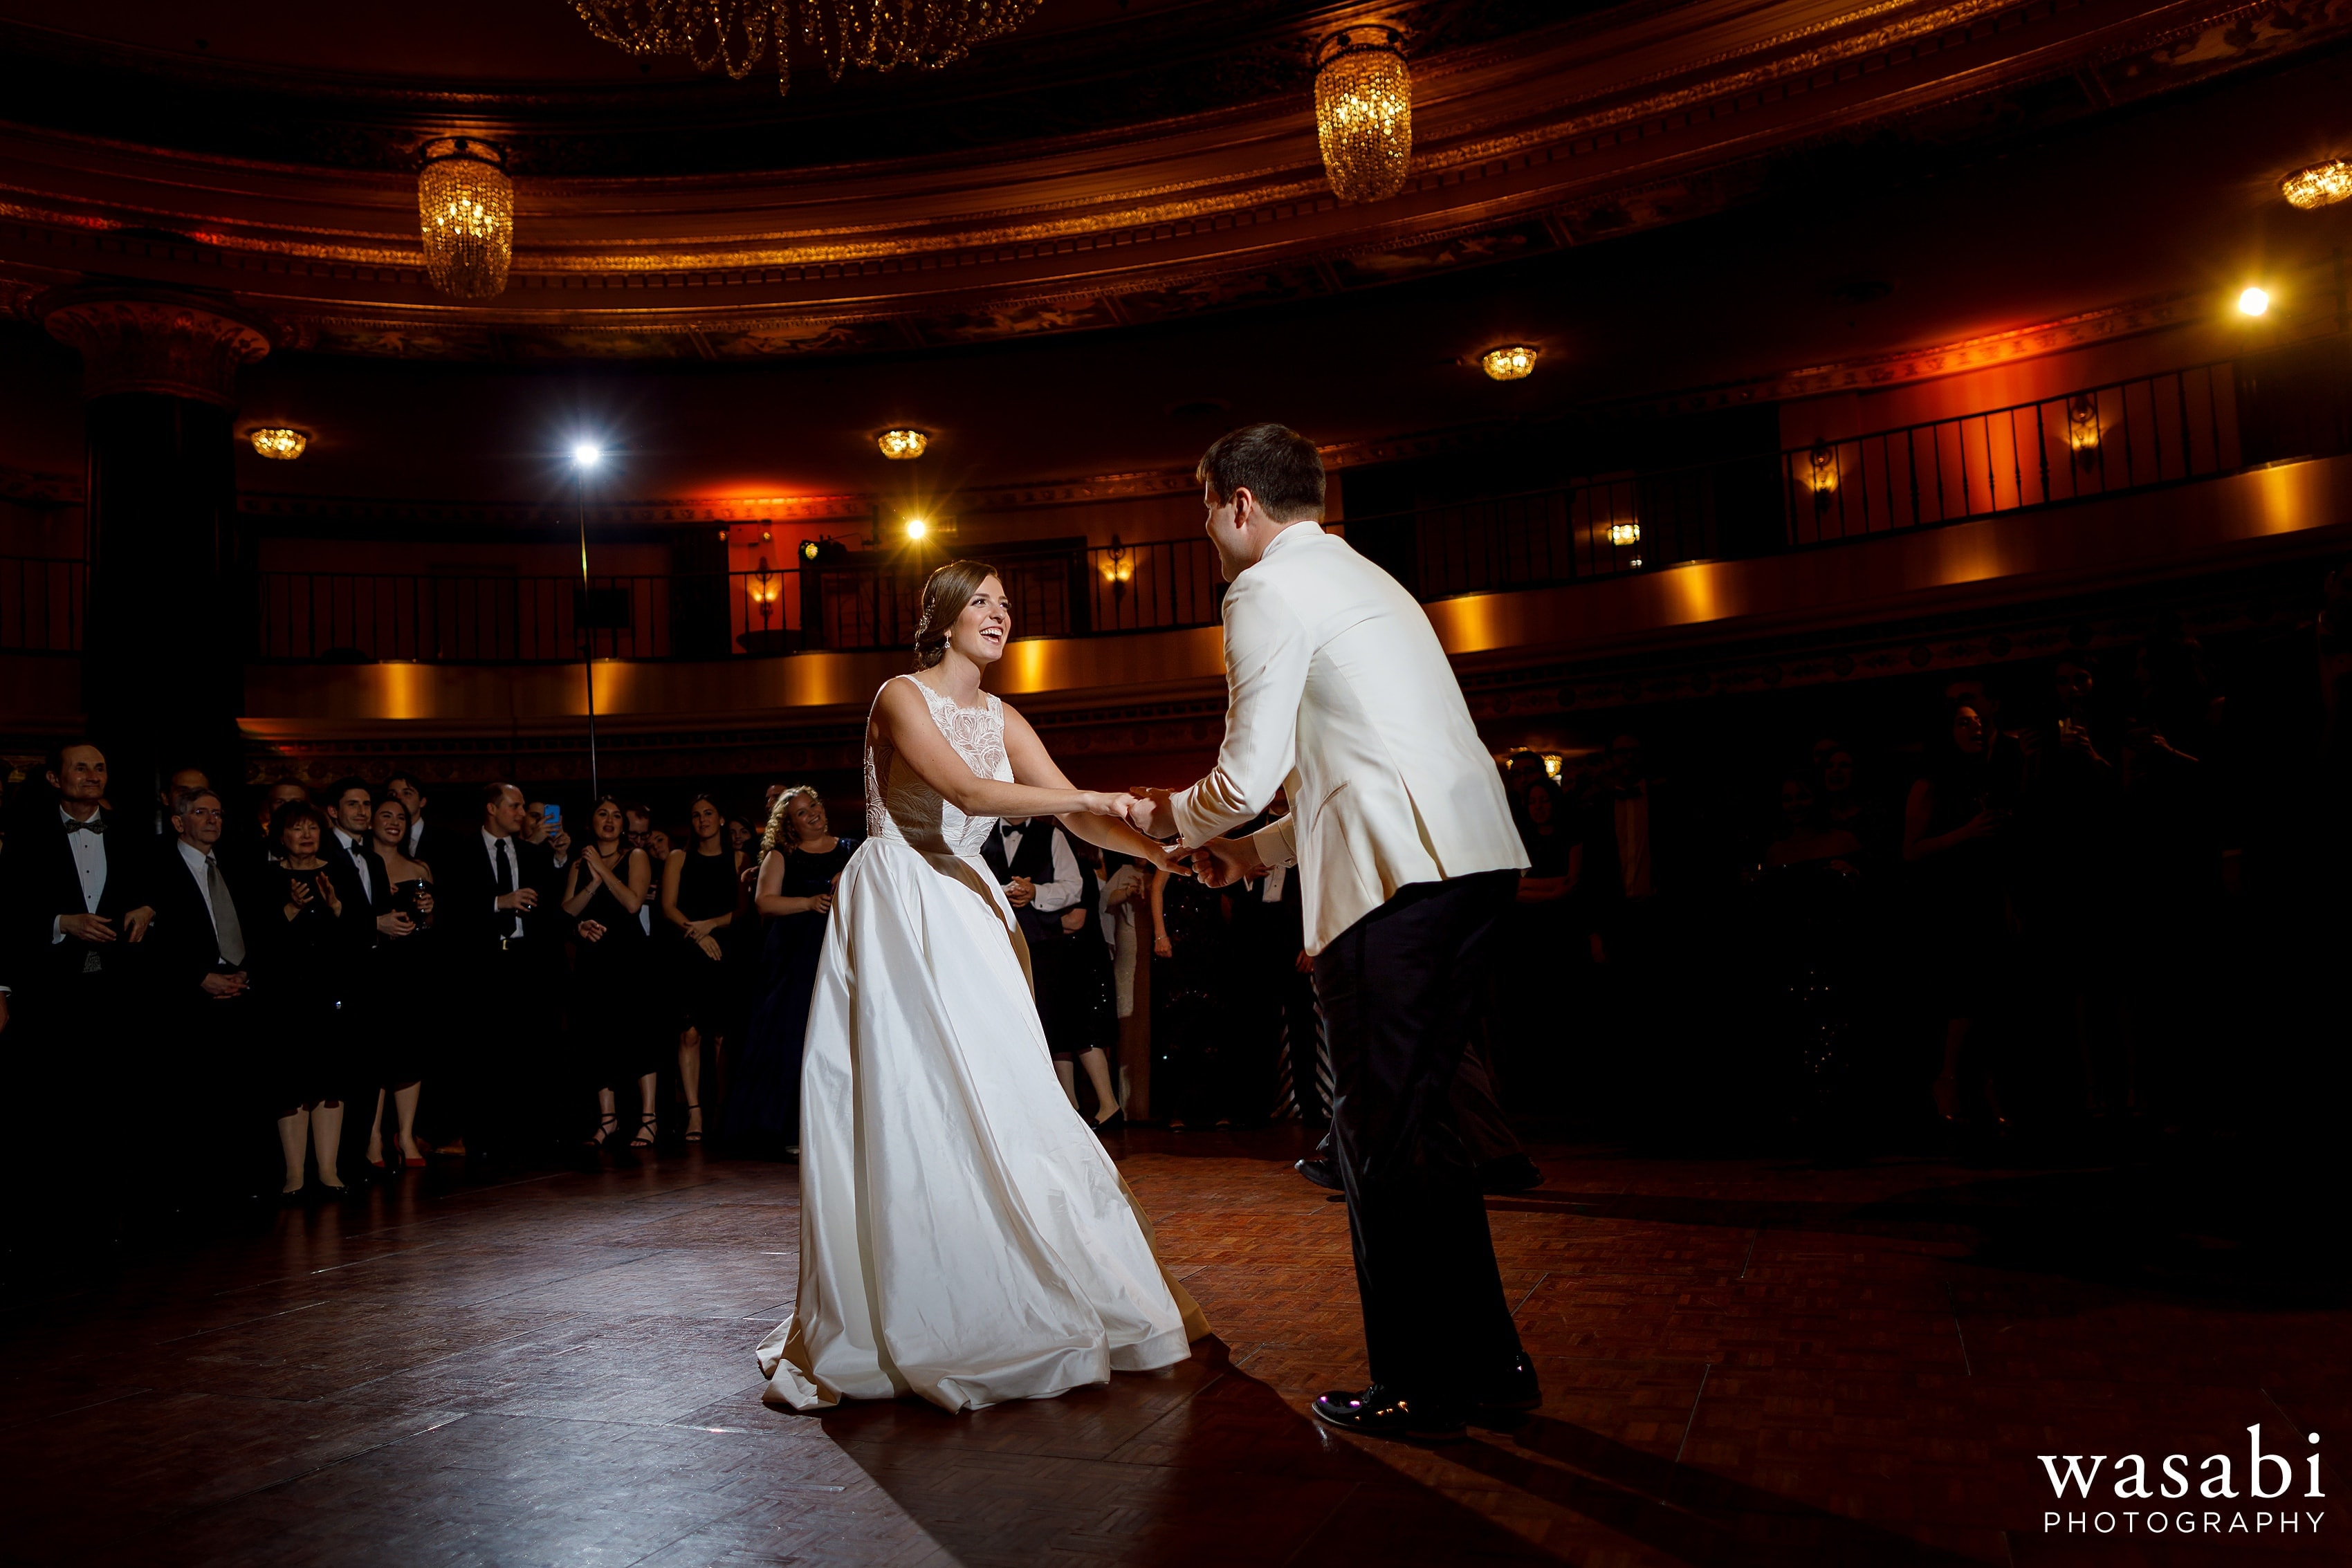 bride and grooms first dance during Jewish wedding reception at InterContinental Chicago Magnificent Mile Hotel